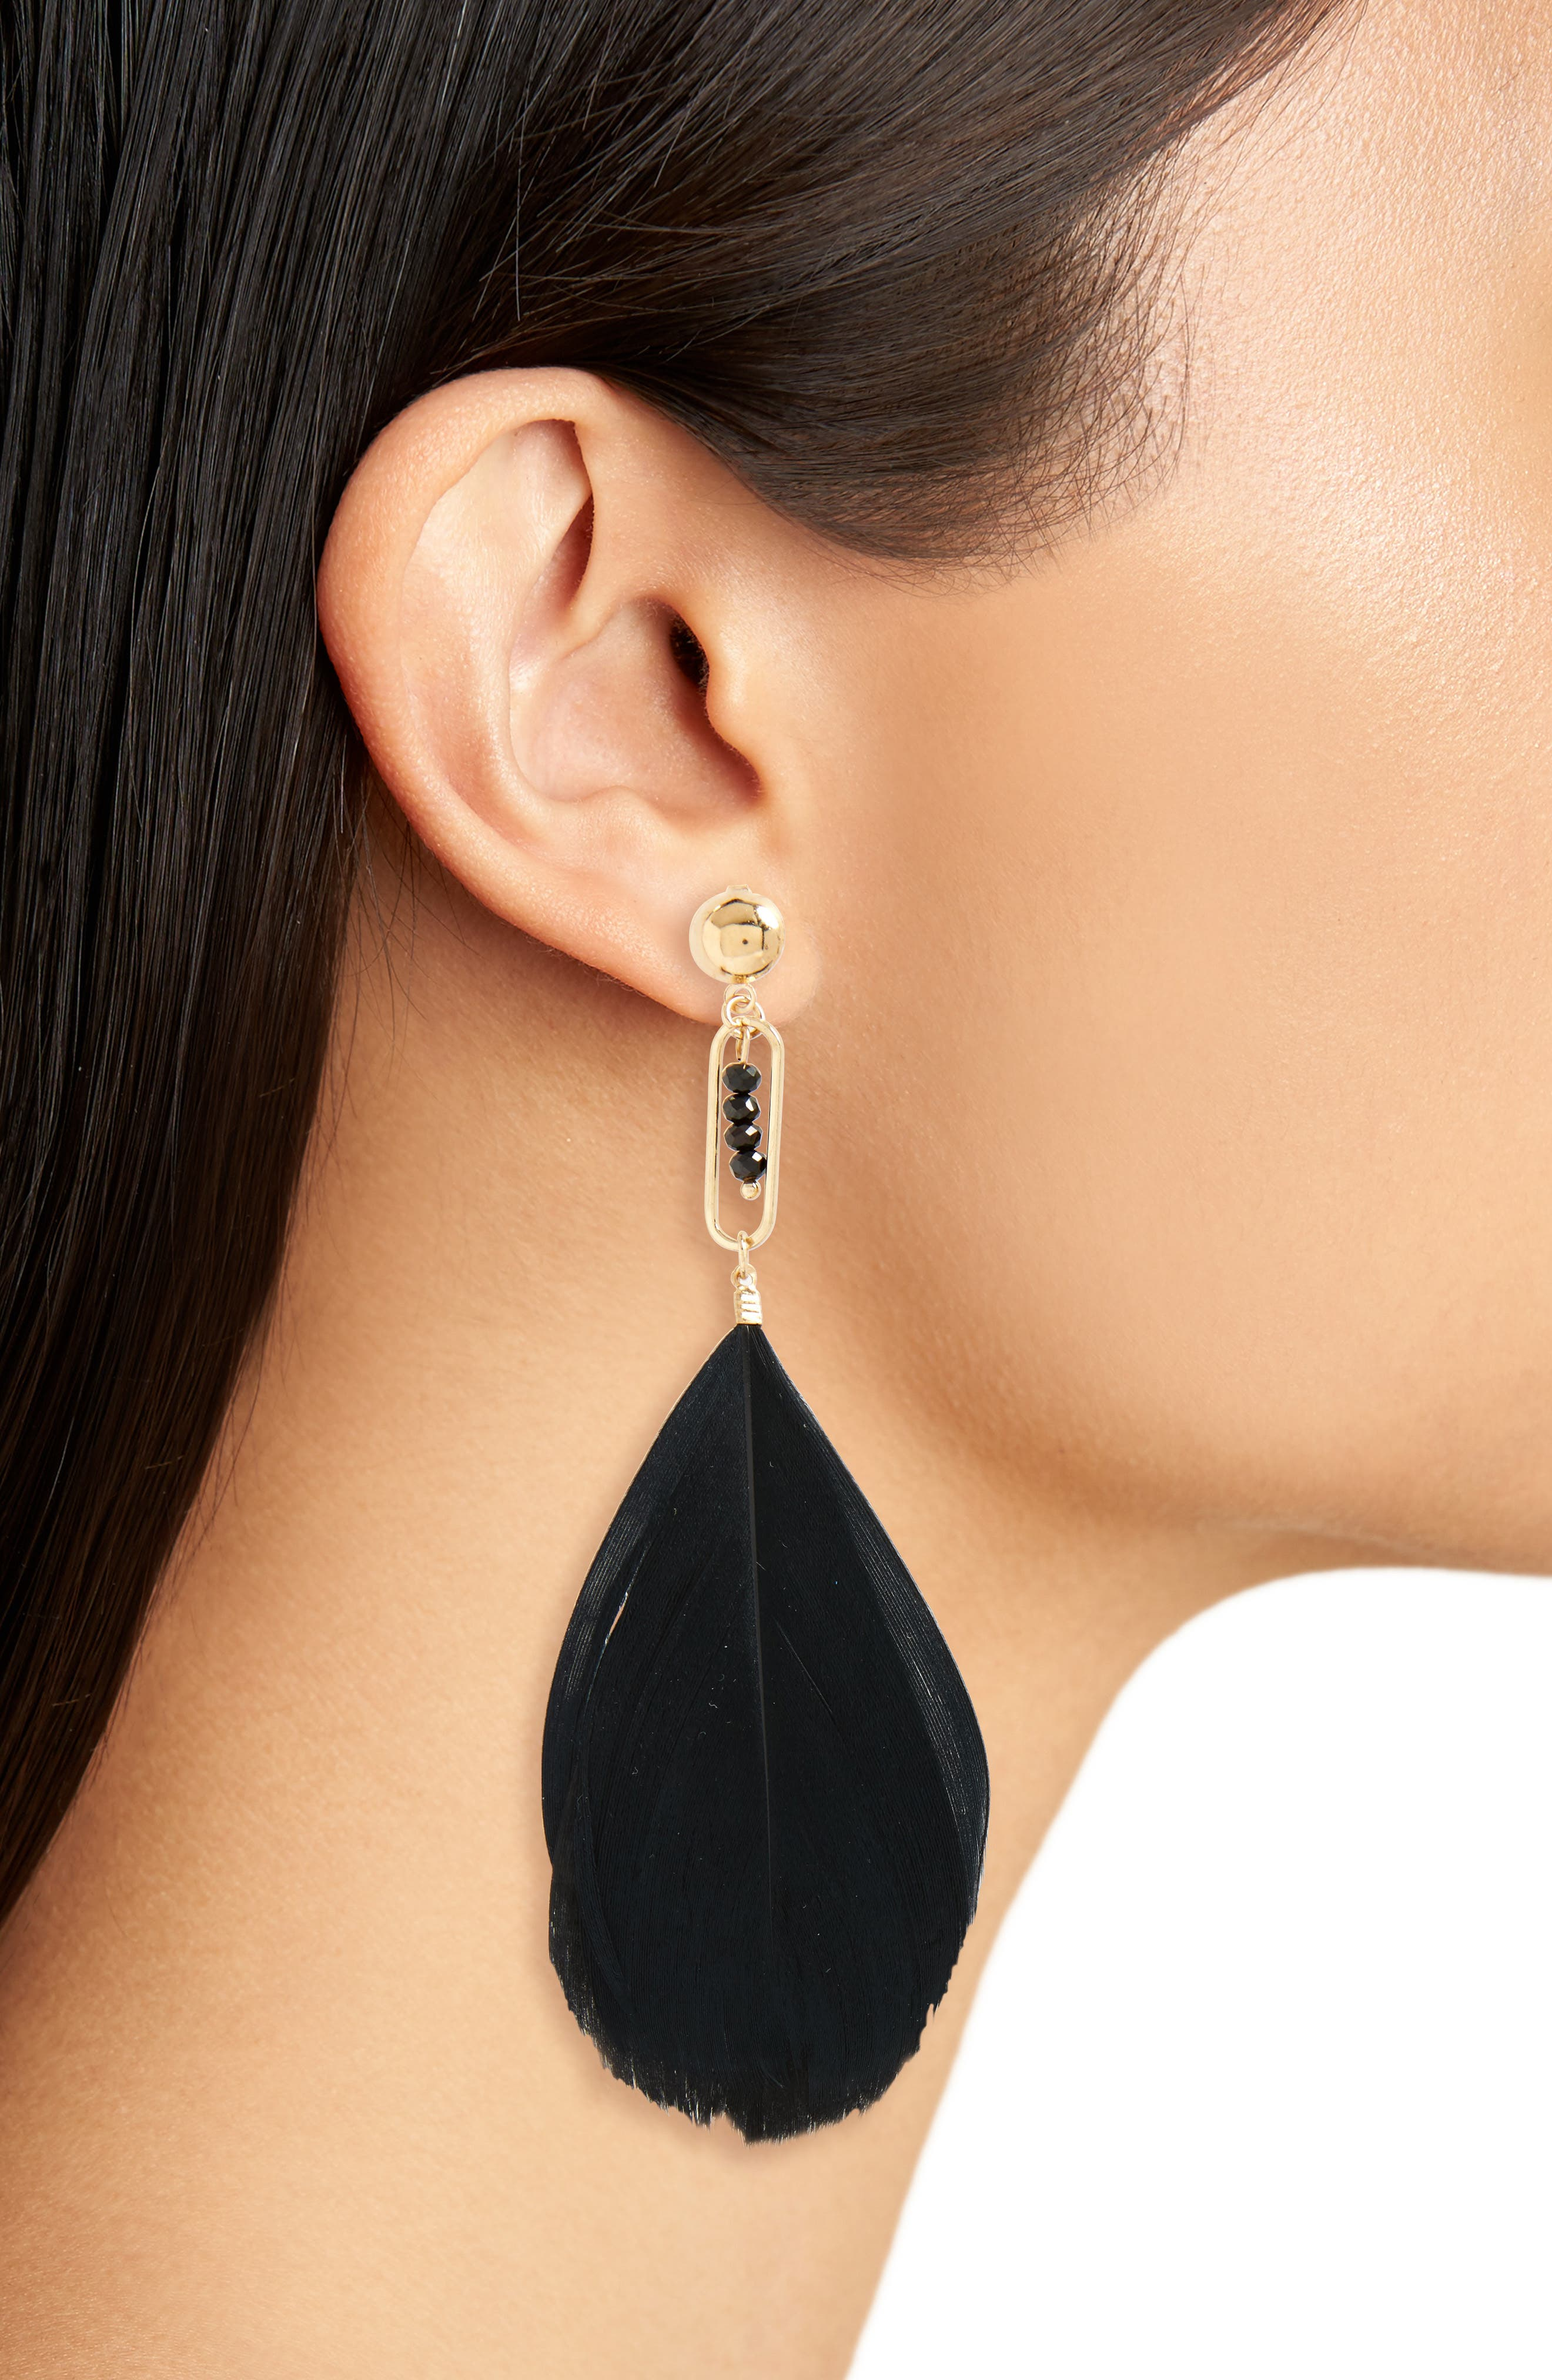 Bead & Feather Drop Earrings,                             Alternate thumbnail 2, color,                             Black/ Gold